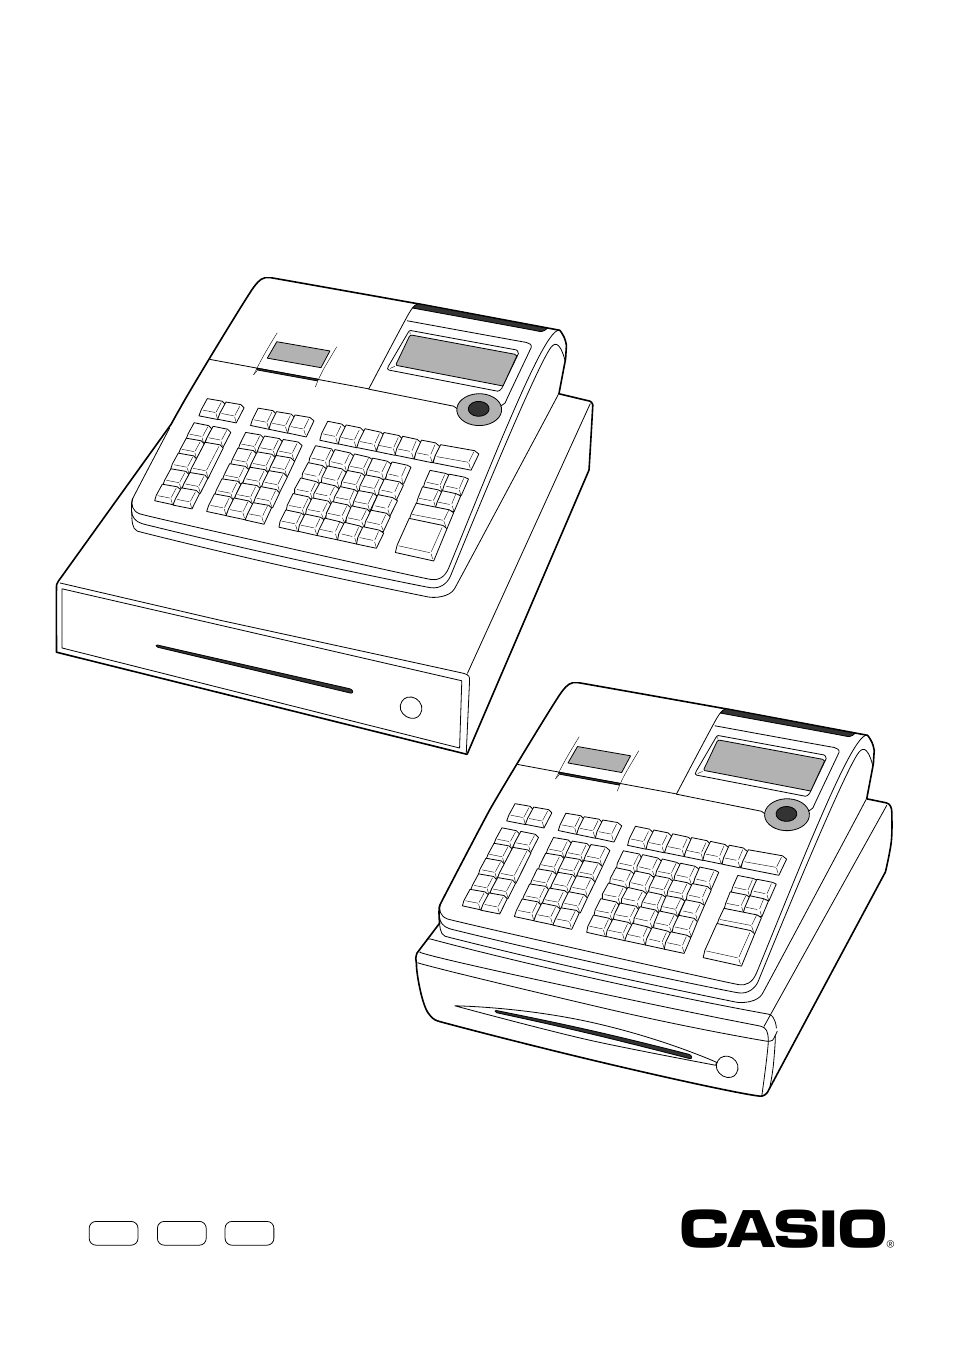 casio s300 manual